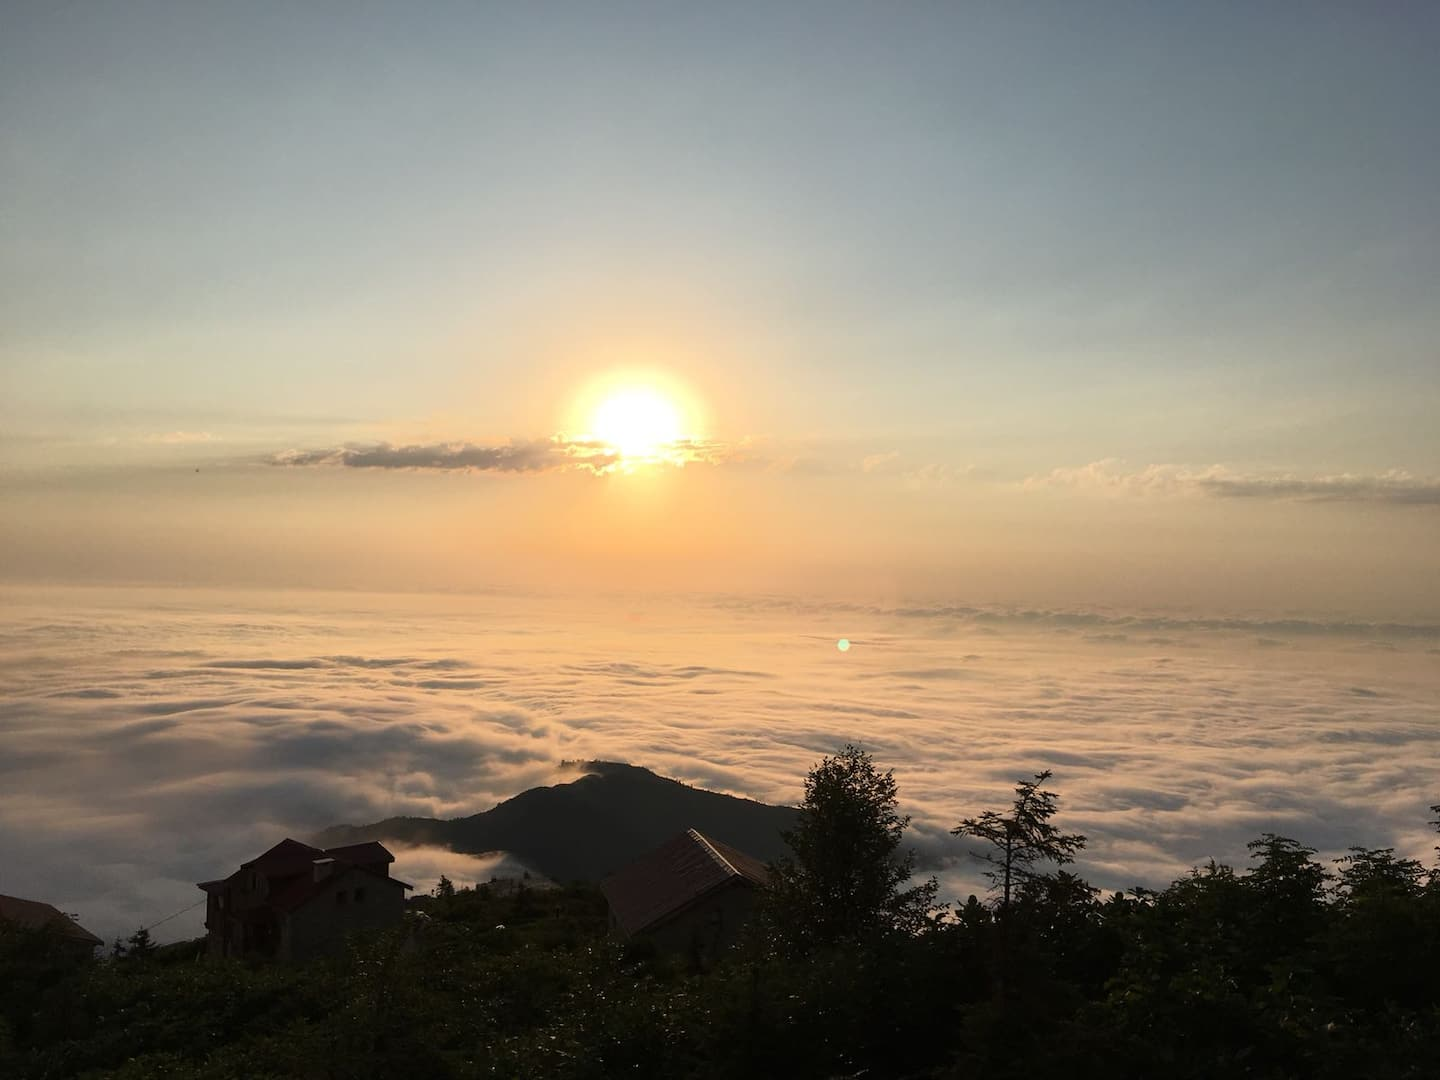 AirBnB in Turkey, Rize: On top of the world, and 'above the clouds' views!